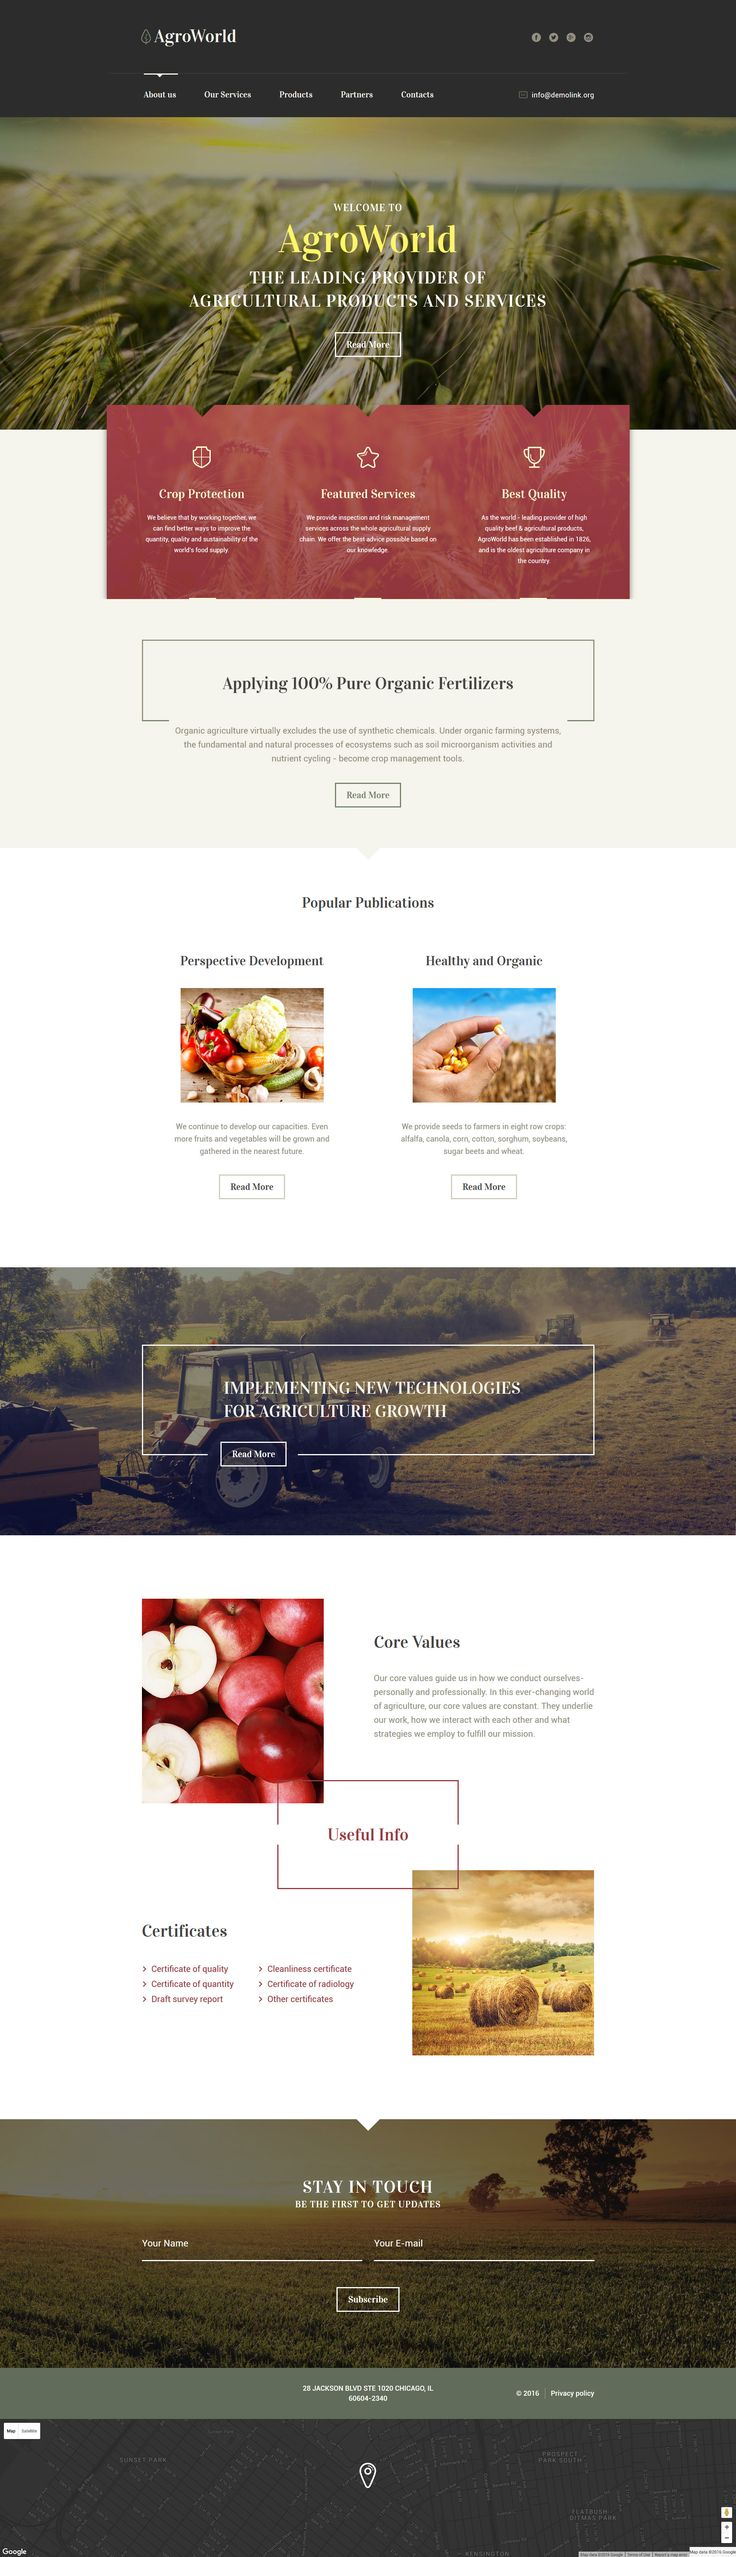 Agriculture Responsive Website Template http://www.templatemonster.com/website-templates/agriculture-responsive-website-template-58560.html